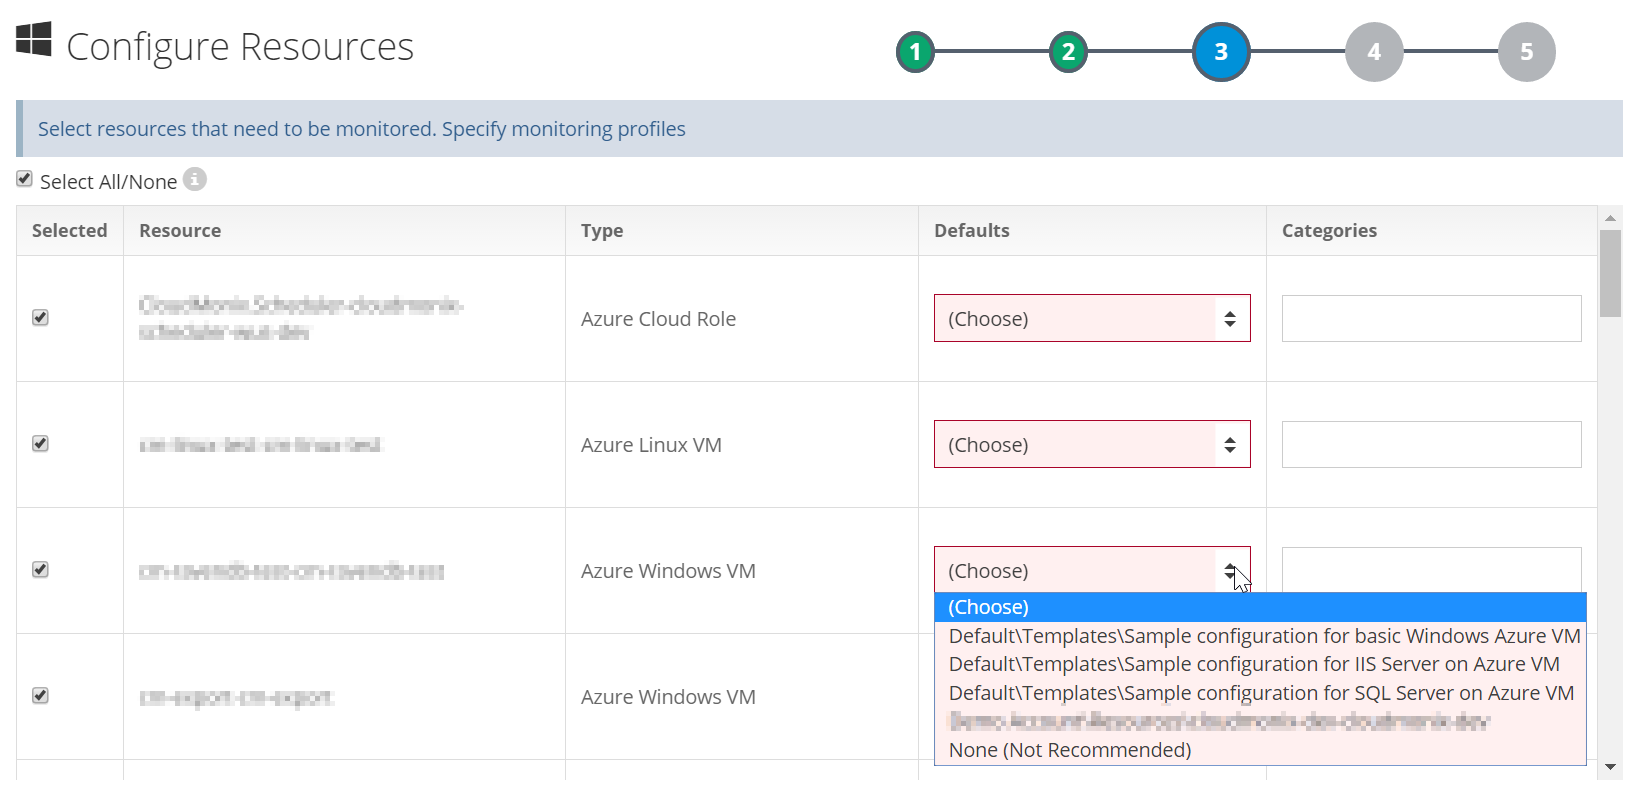 Azure Virtual Machines (Windows) - Monitoring and Automating